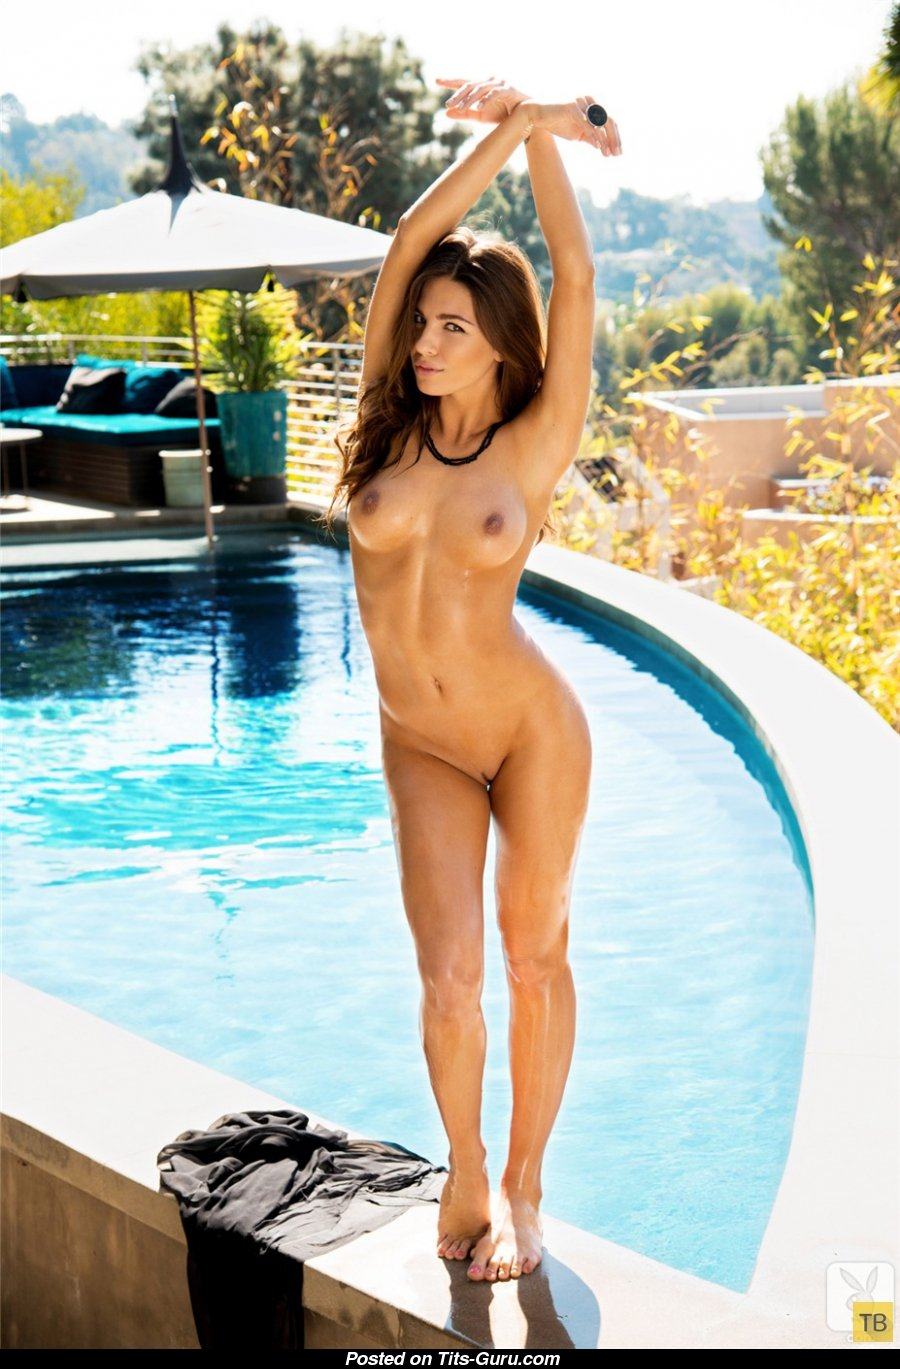 jessica ashley nude: 15 pics of hot naked boobs in 2018